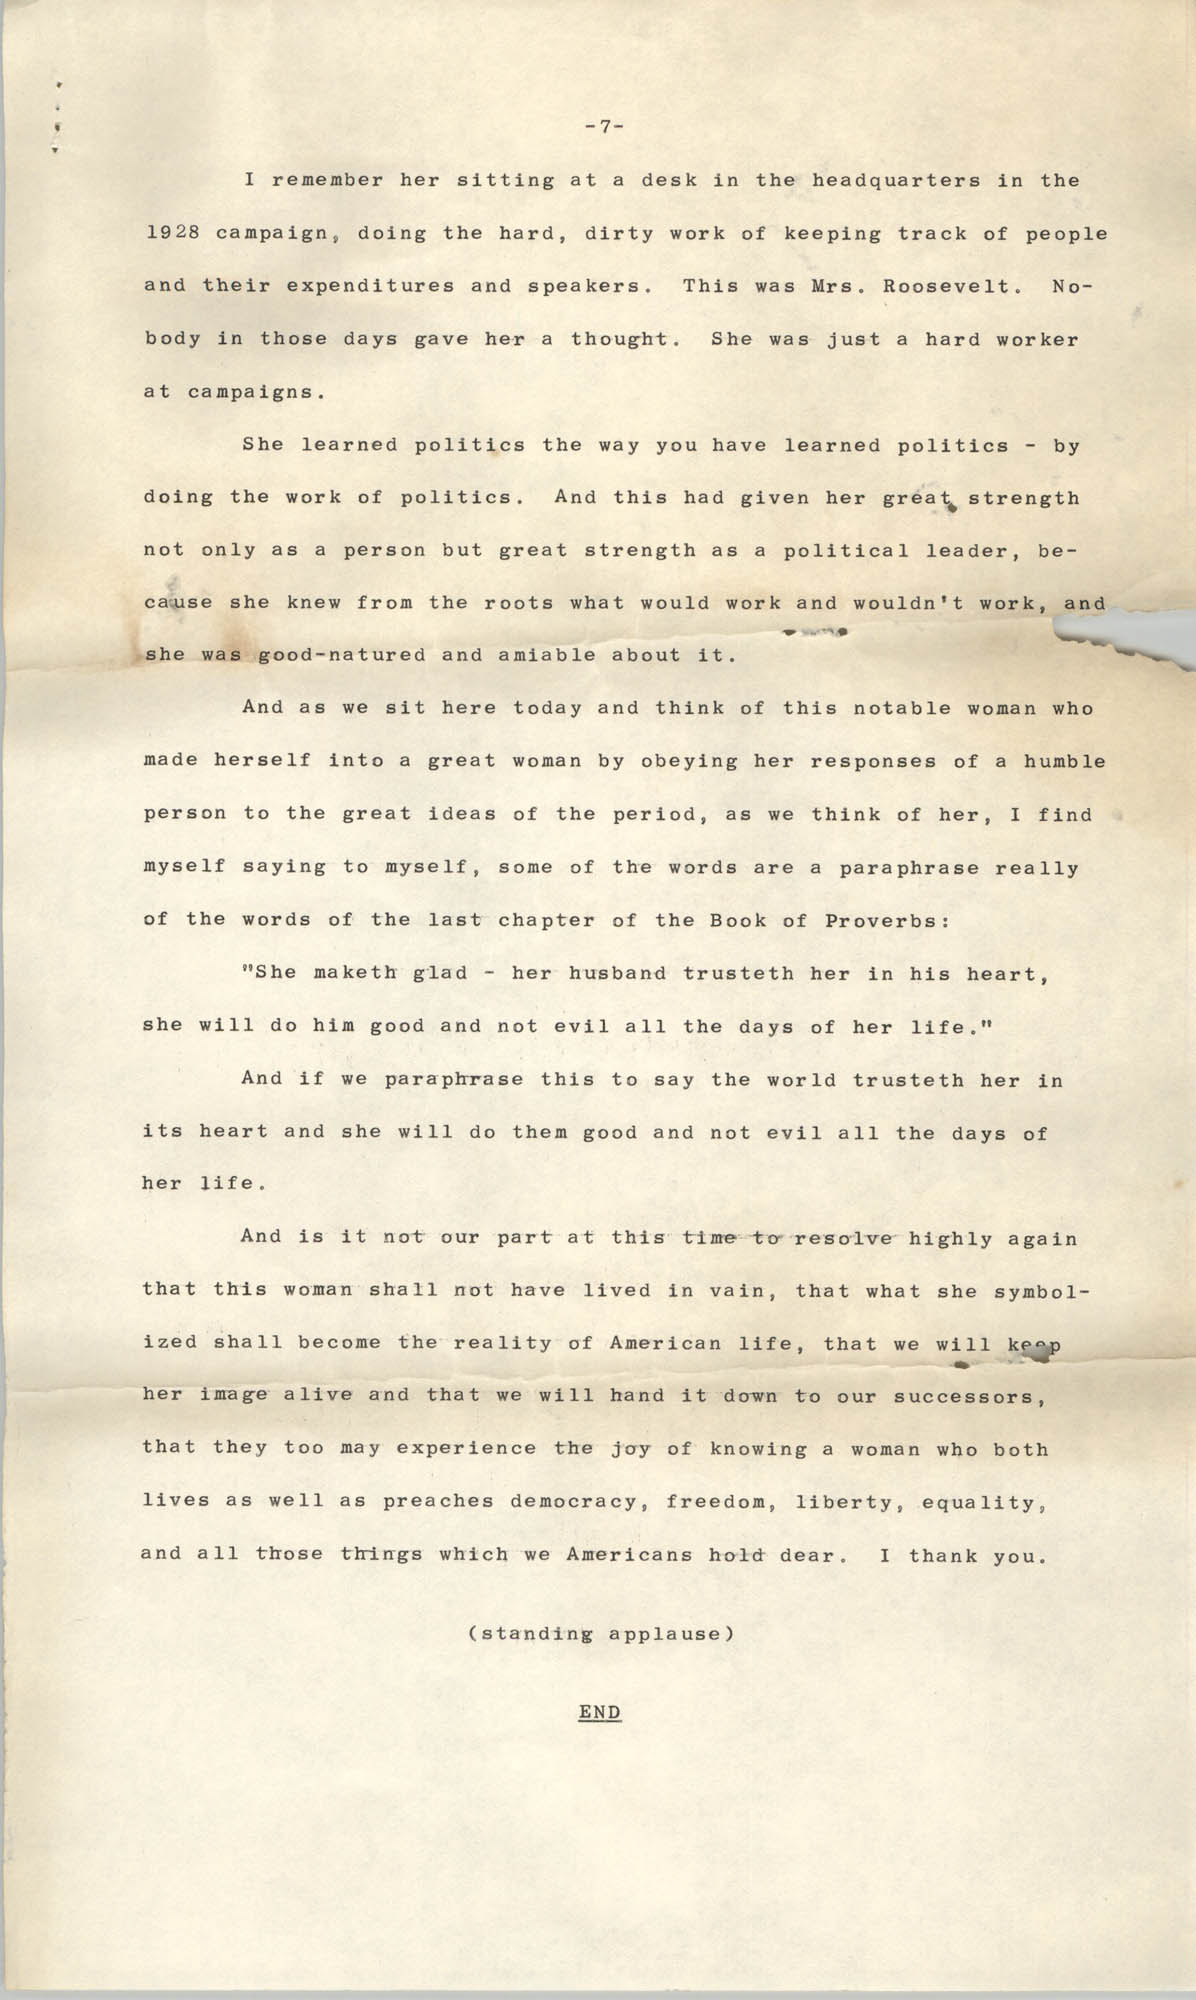 Tribute to the Memory of Mrs. Franklin D. Roosevelt by the Honorable Frances Perkins, Page 7